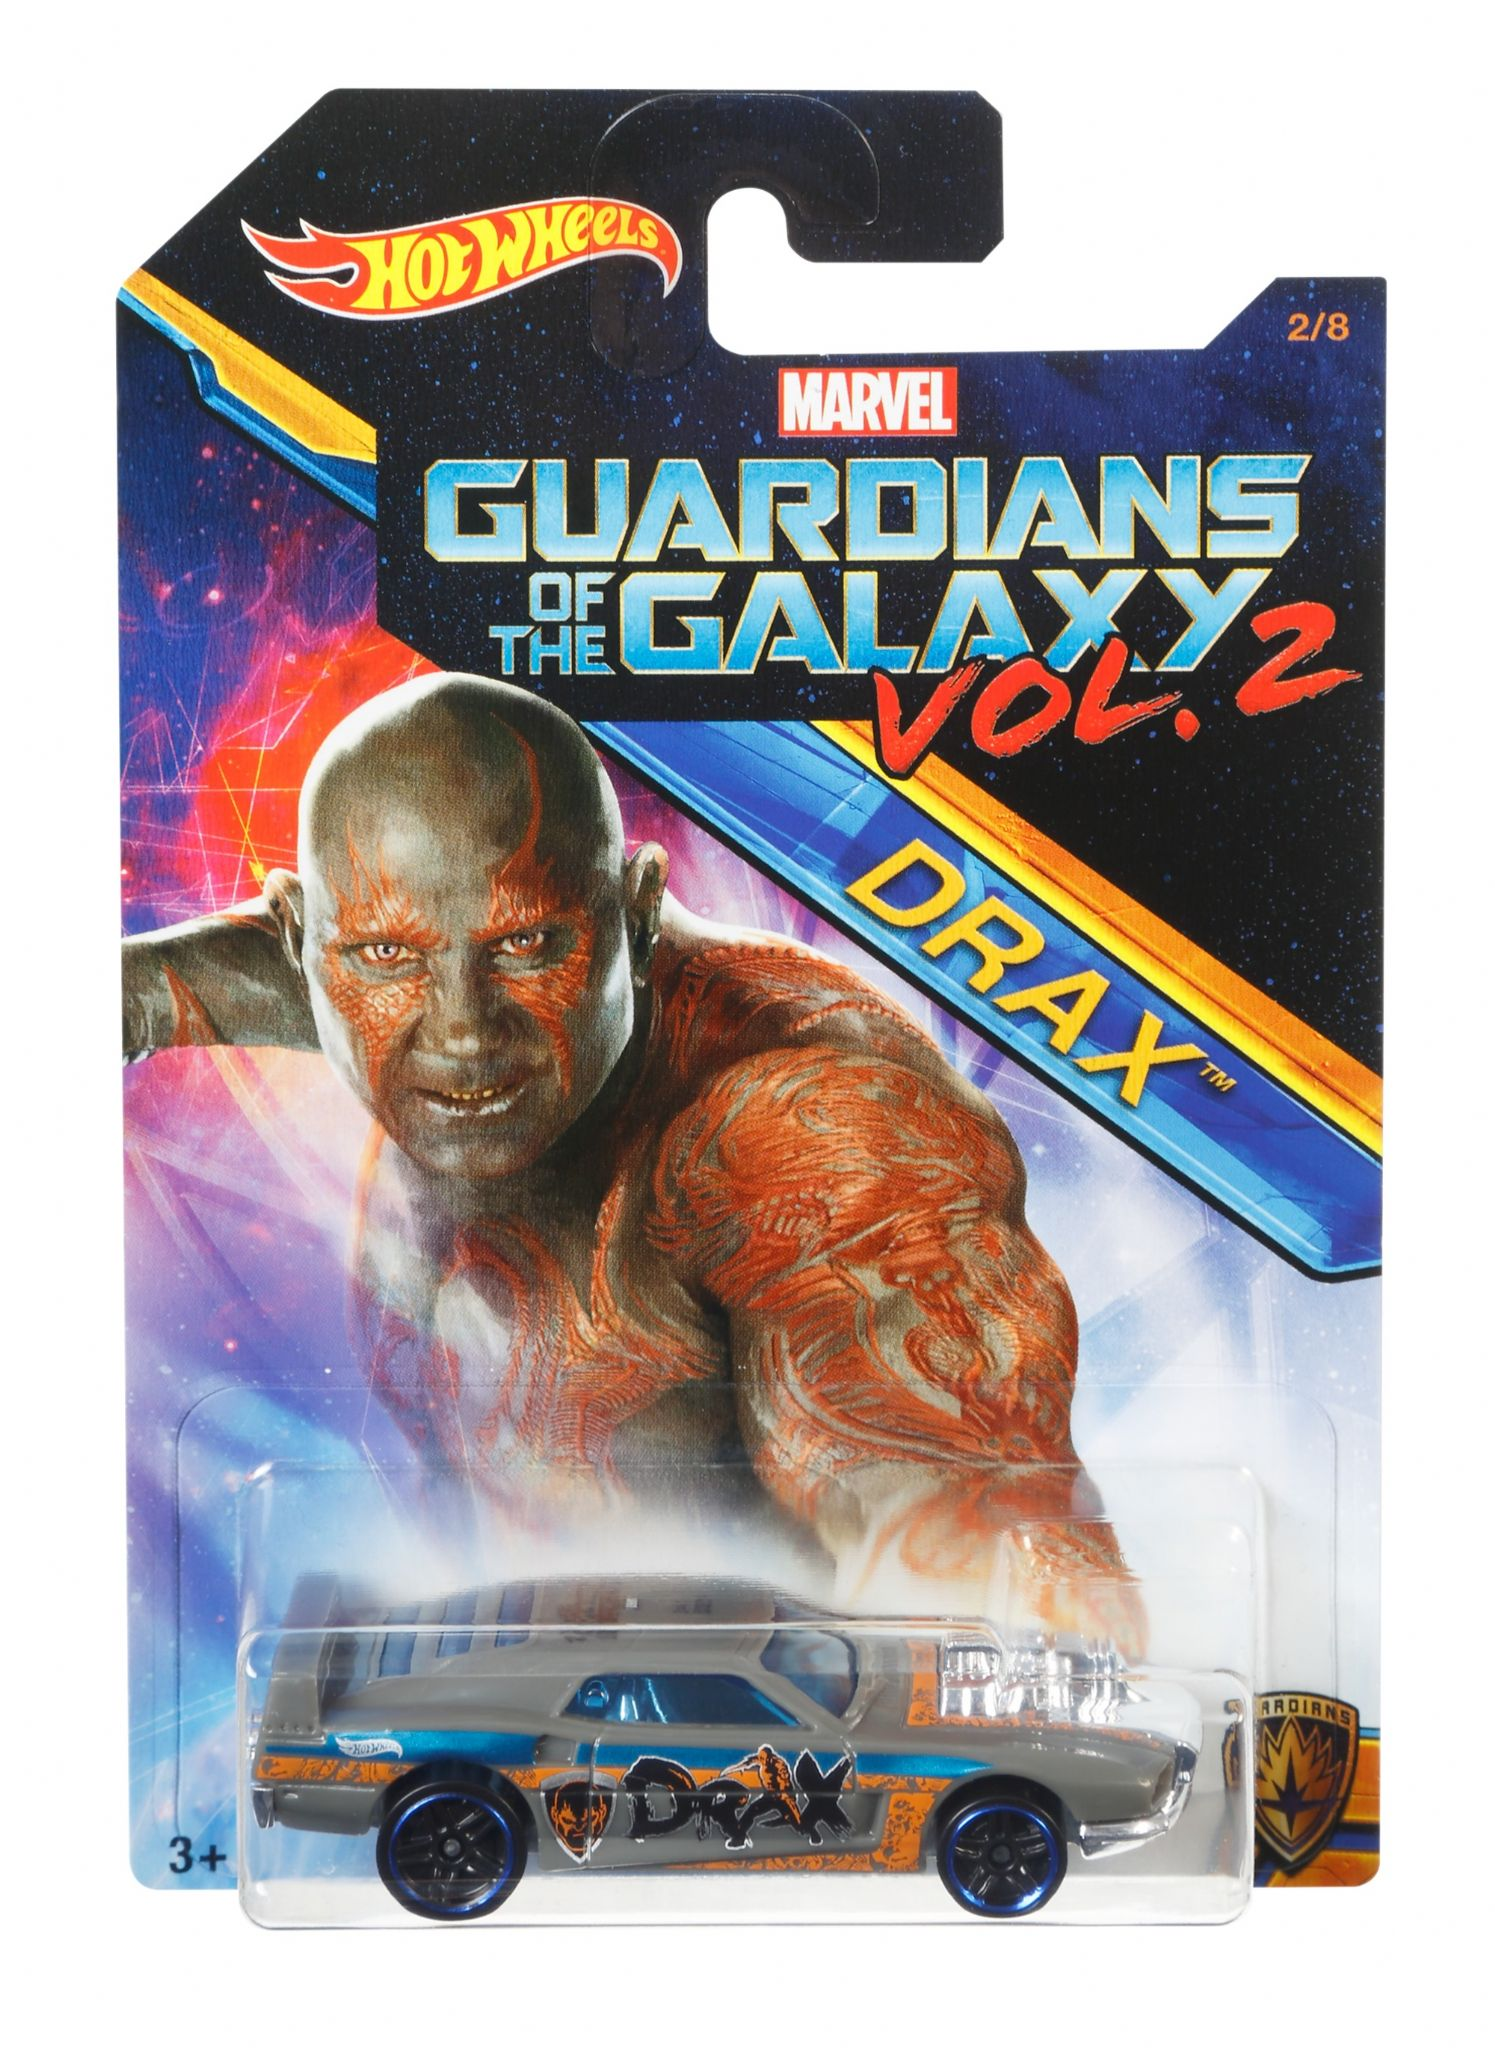 Hot Wheels Guardians of the Galaxy Vol 2 Rivited